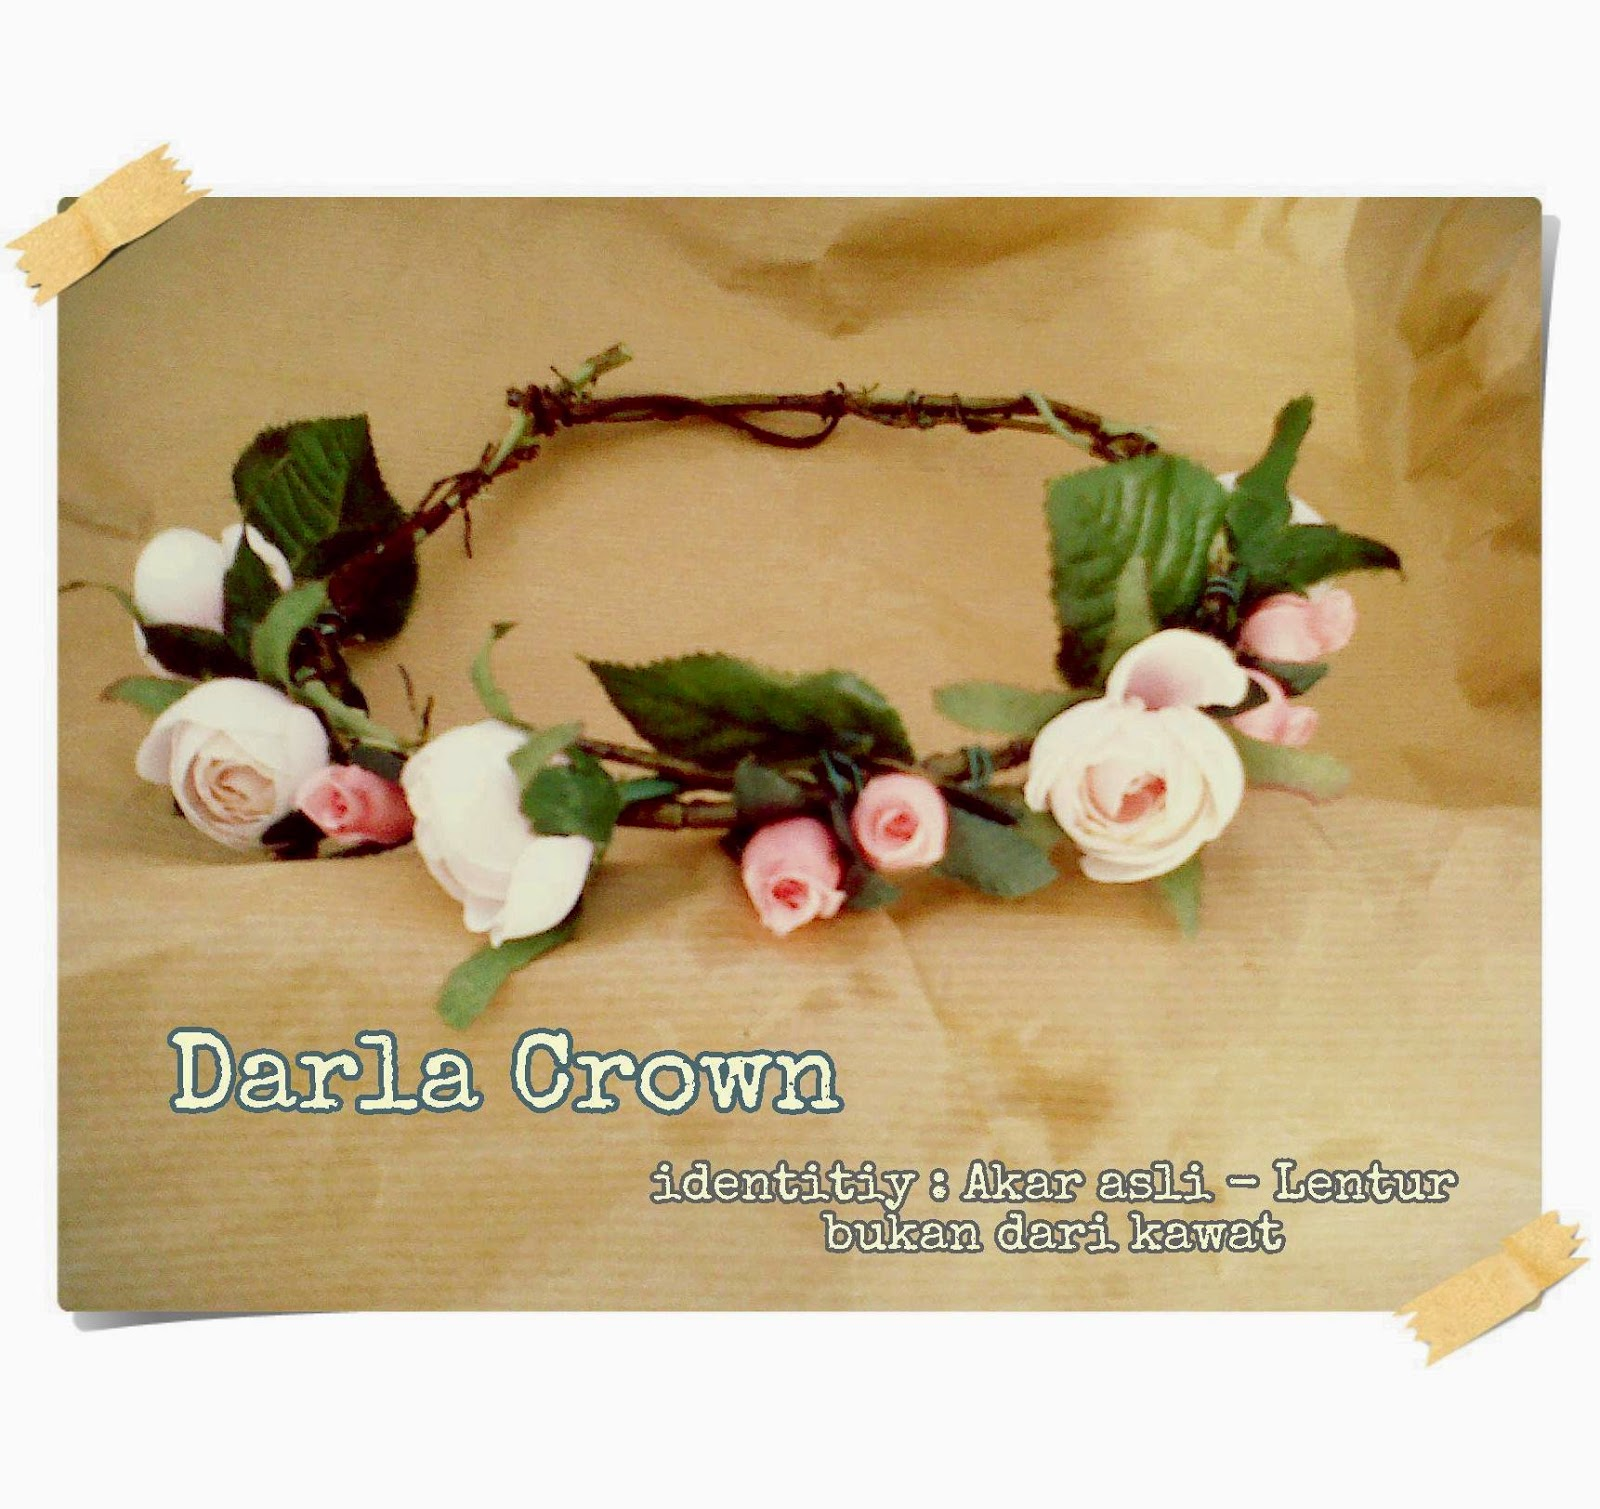 Jual flower crown mahkota bunga jual flower crown cocok bgt buat pelengkap buat gaya pelengkap aksesoris rambut gift kado buat orang tercinta prewedding photo wedding fashion hijab selfie izmirmasajfo Image collections